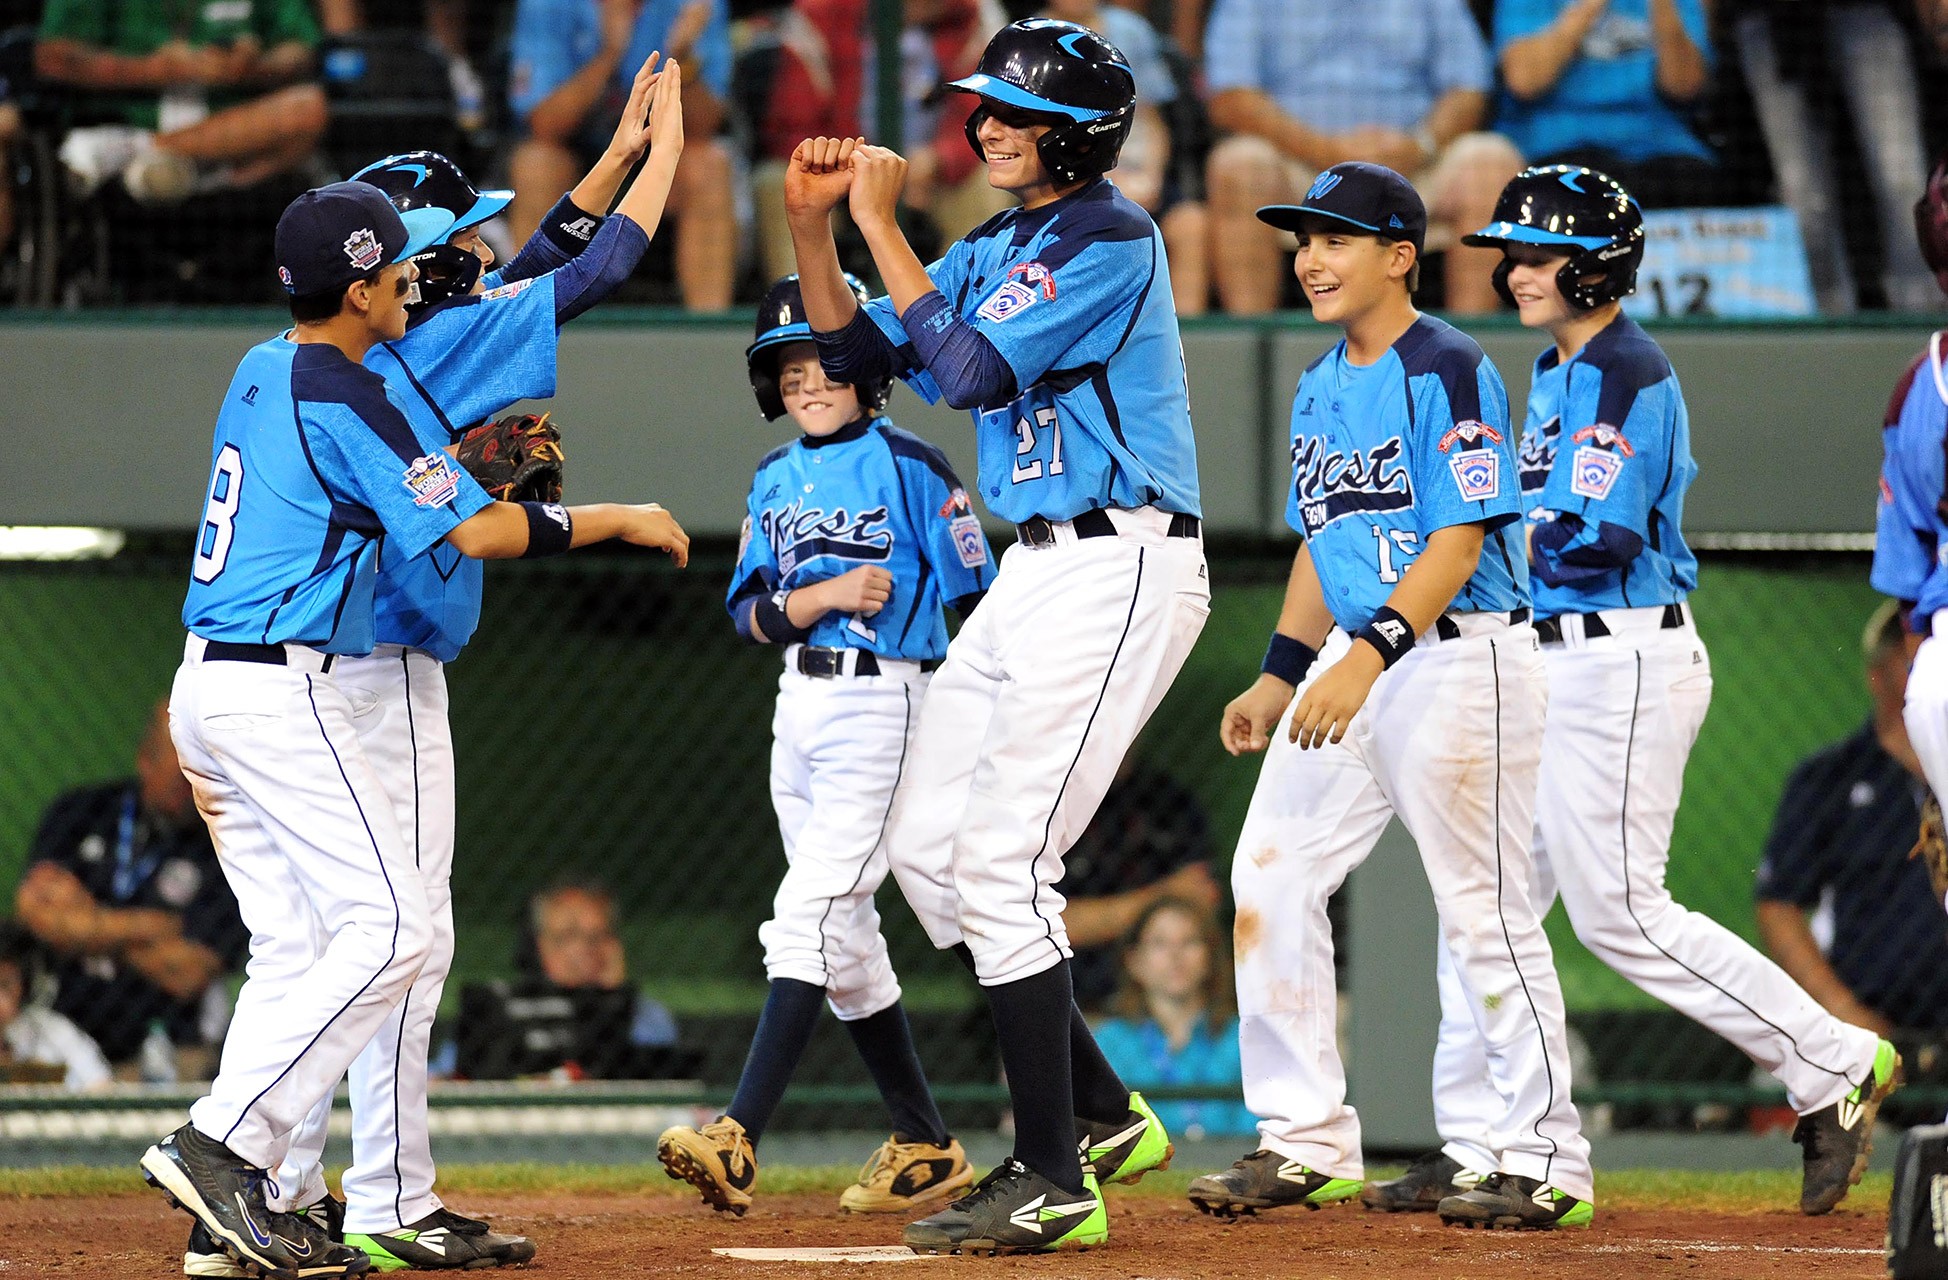 Las Vegas first baseman Brennan Holligan is met at home plate by his teammates after homering in his team's 8-1 win over Philadelphia at the Little League World Series.